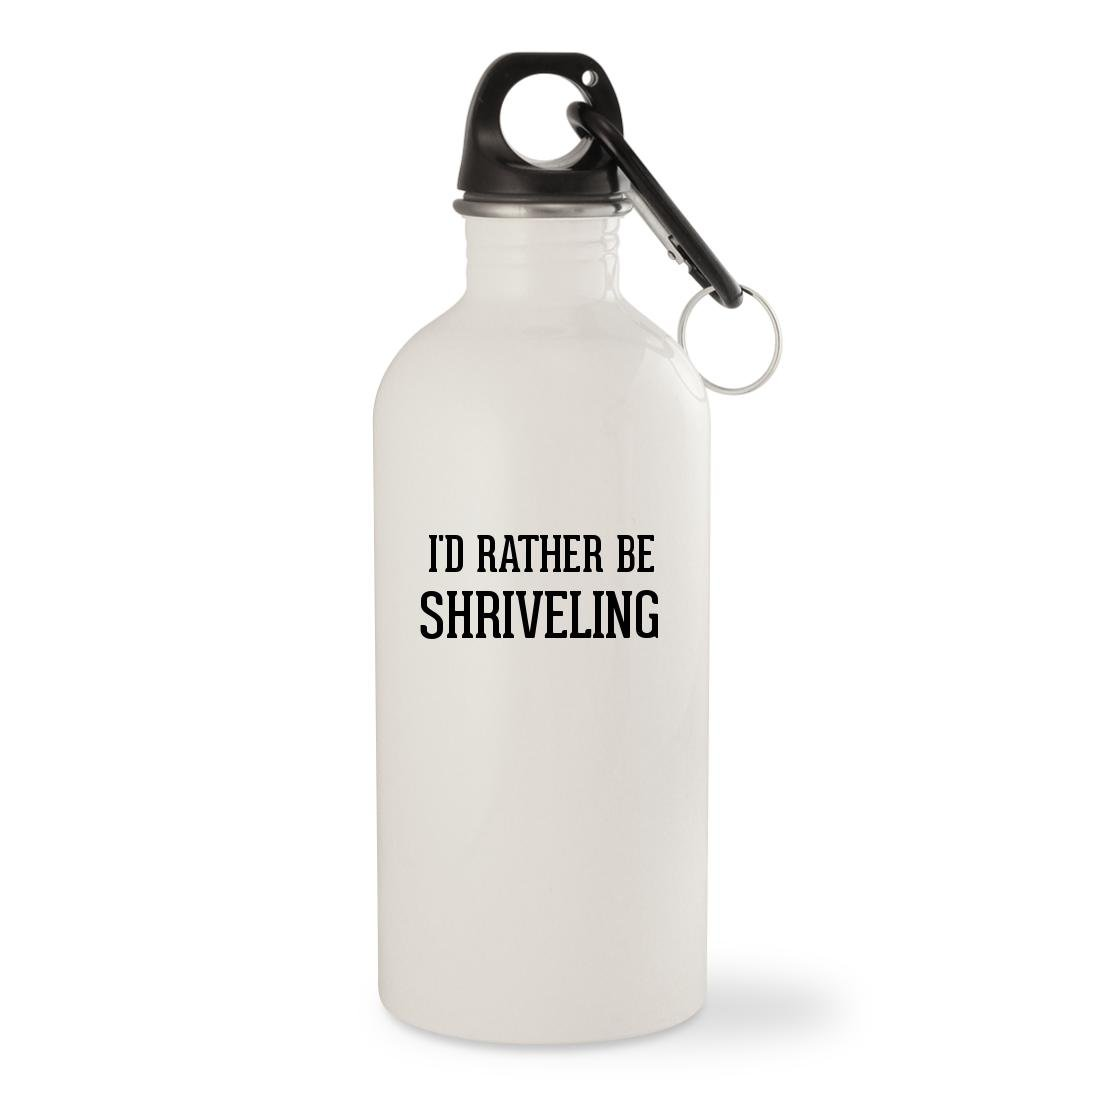 I'd Rather Be SHRIVELING - White 20oz Stainless Steel Water Bottle with Carabiner by Molandra Products (Image #1)